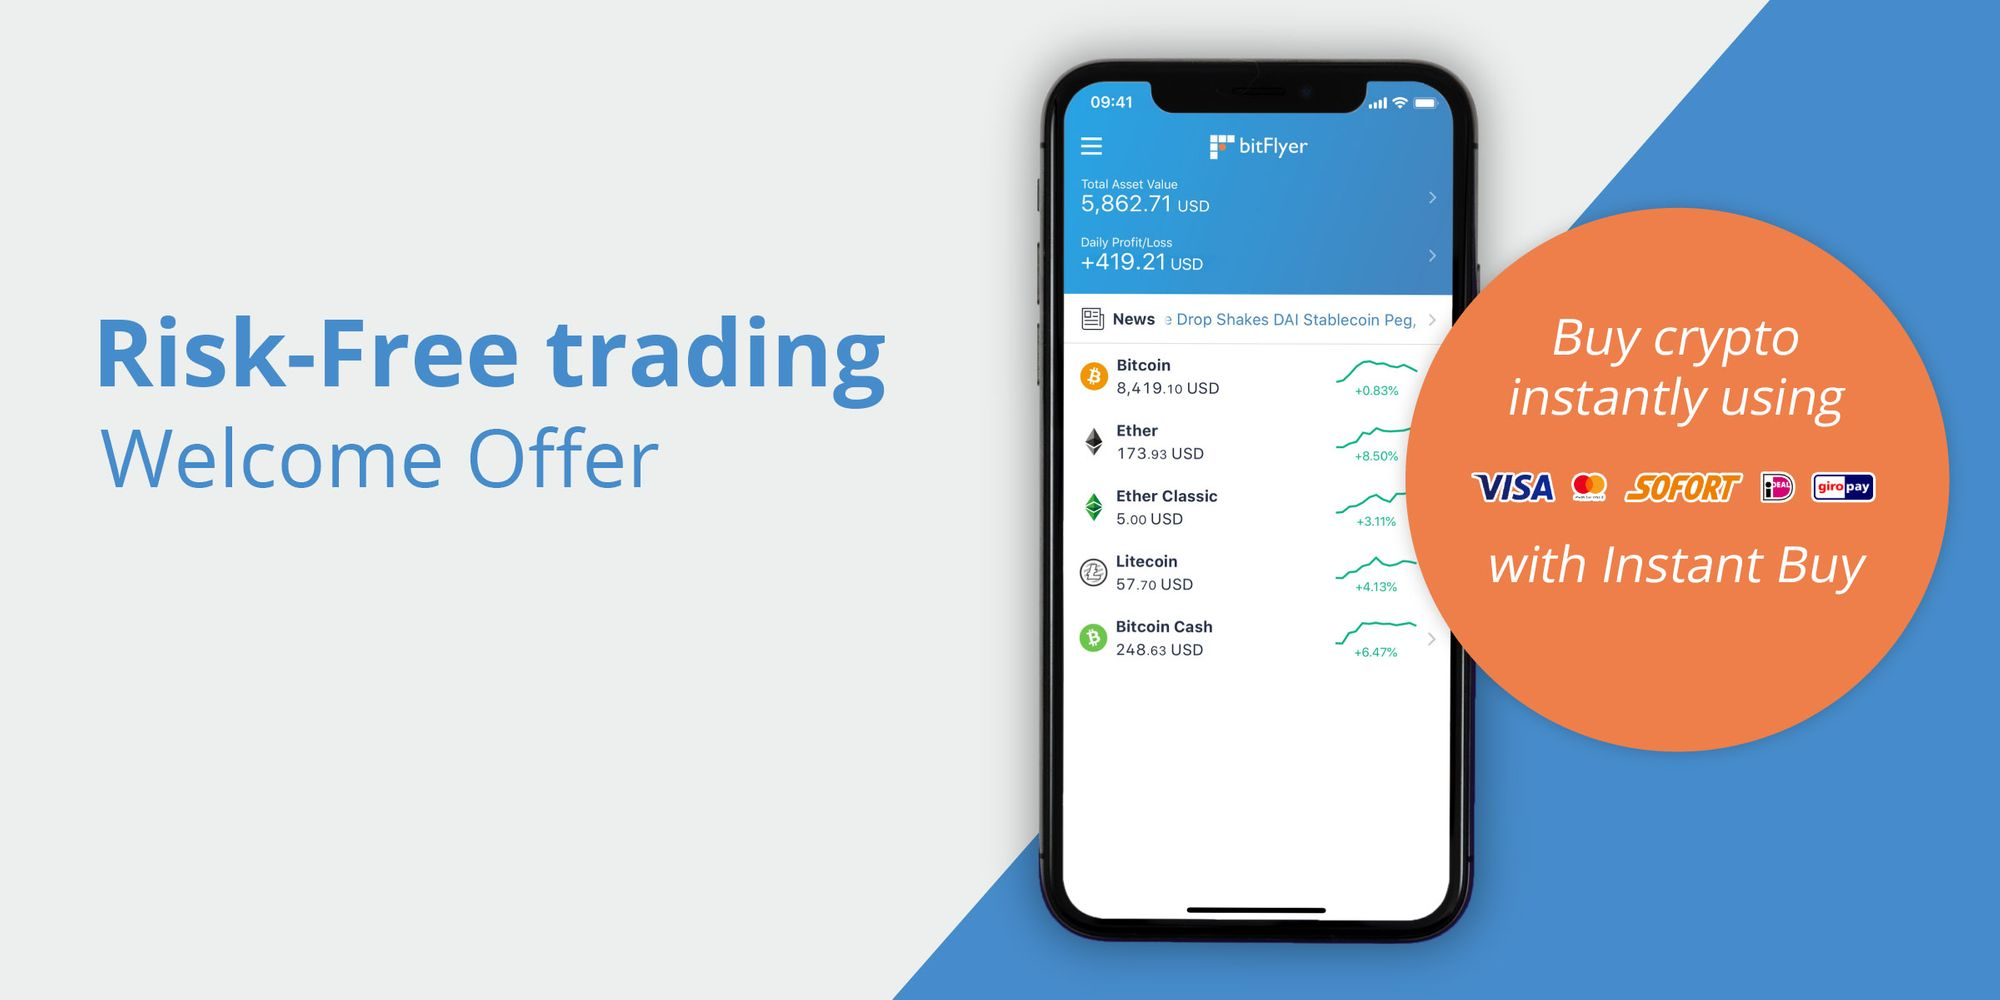 Try bitFlyer risk-free until December 22nd - we will cover your losses up to €50 maximum!